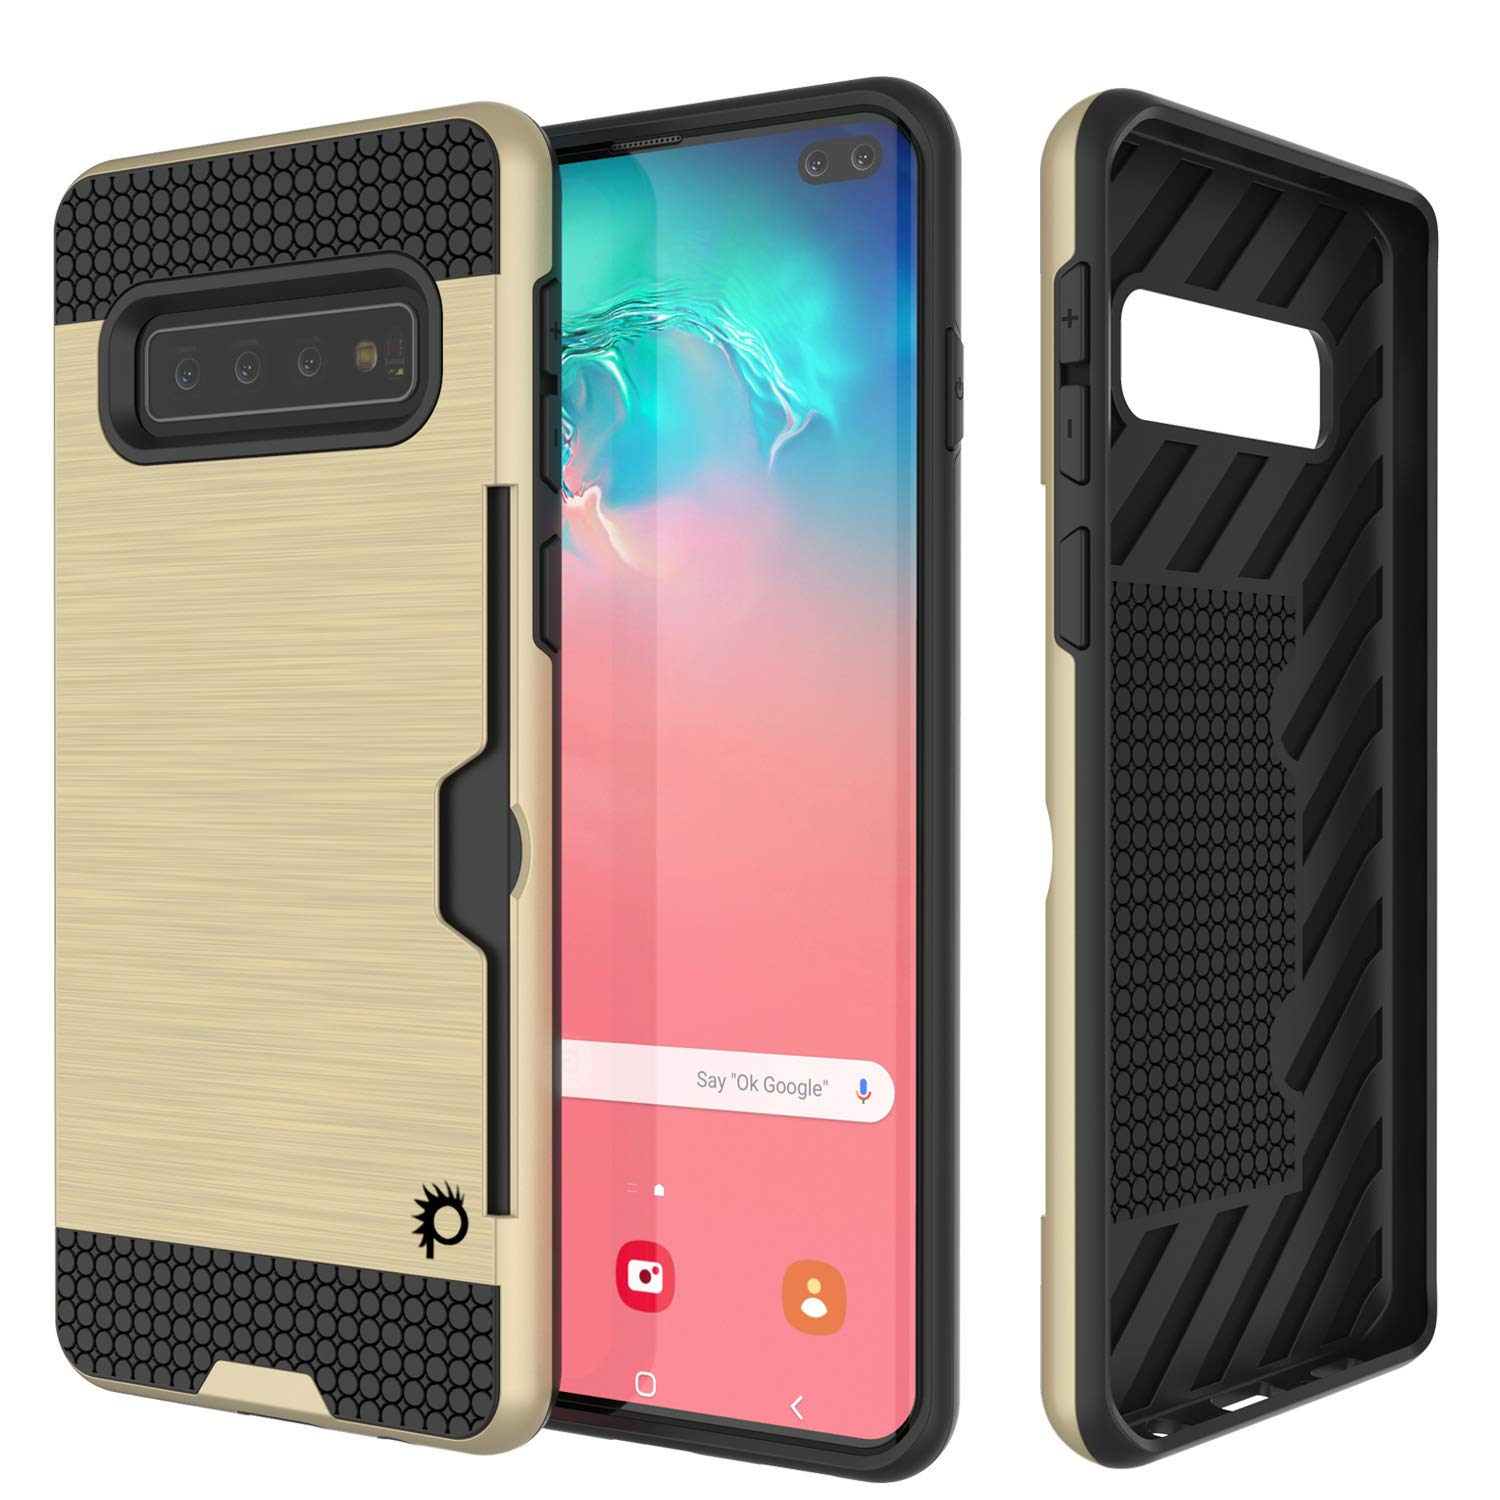 Galaxy S10+ Plus  Case, PUNKcase [SLOT Series] [Slim Fit] Dual-Layer Armor Cover w/Integrated Anti-Shock System, Credit Card Slot [Gold]